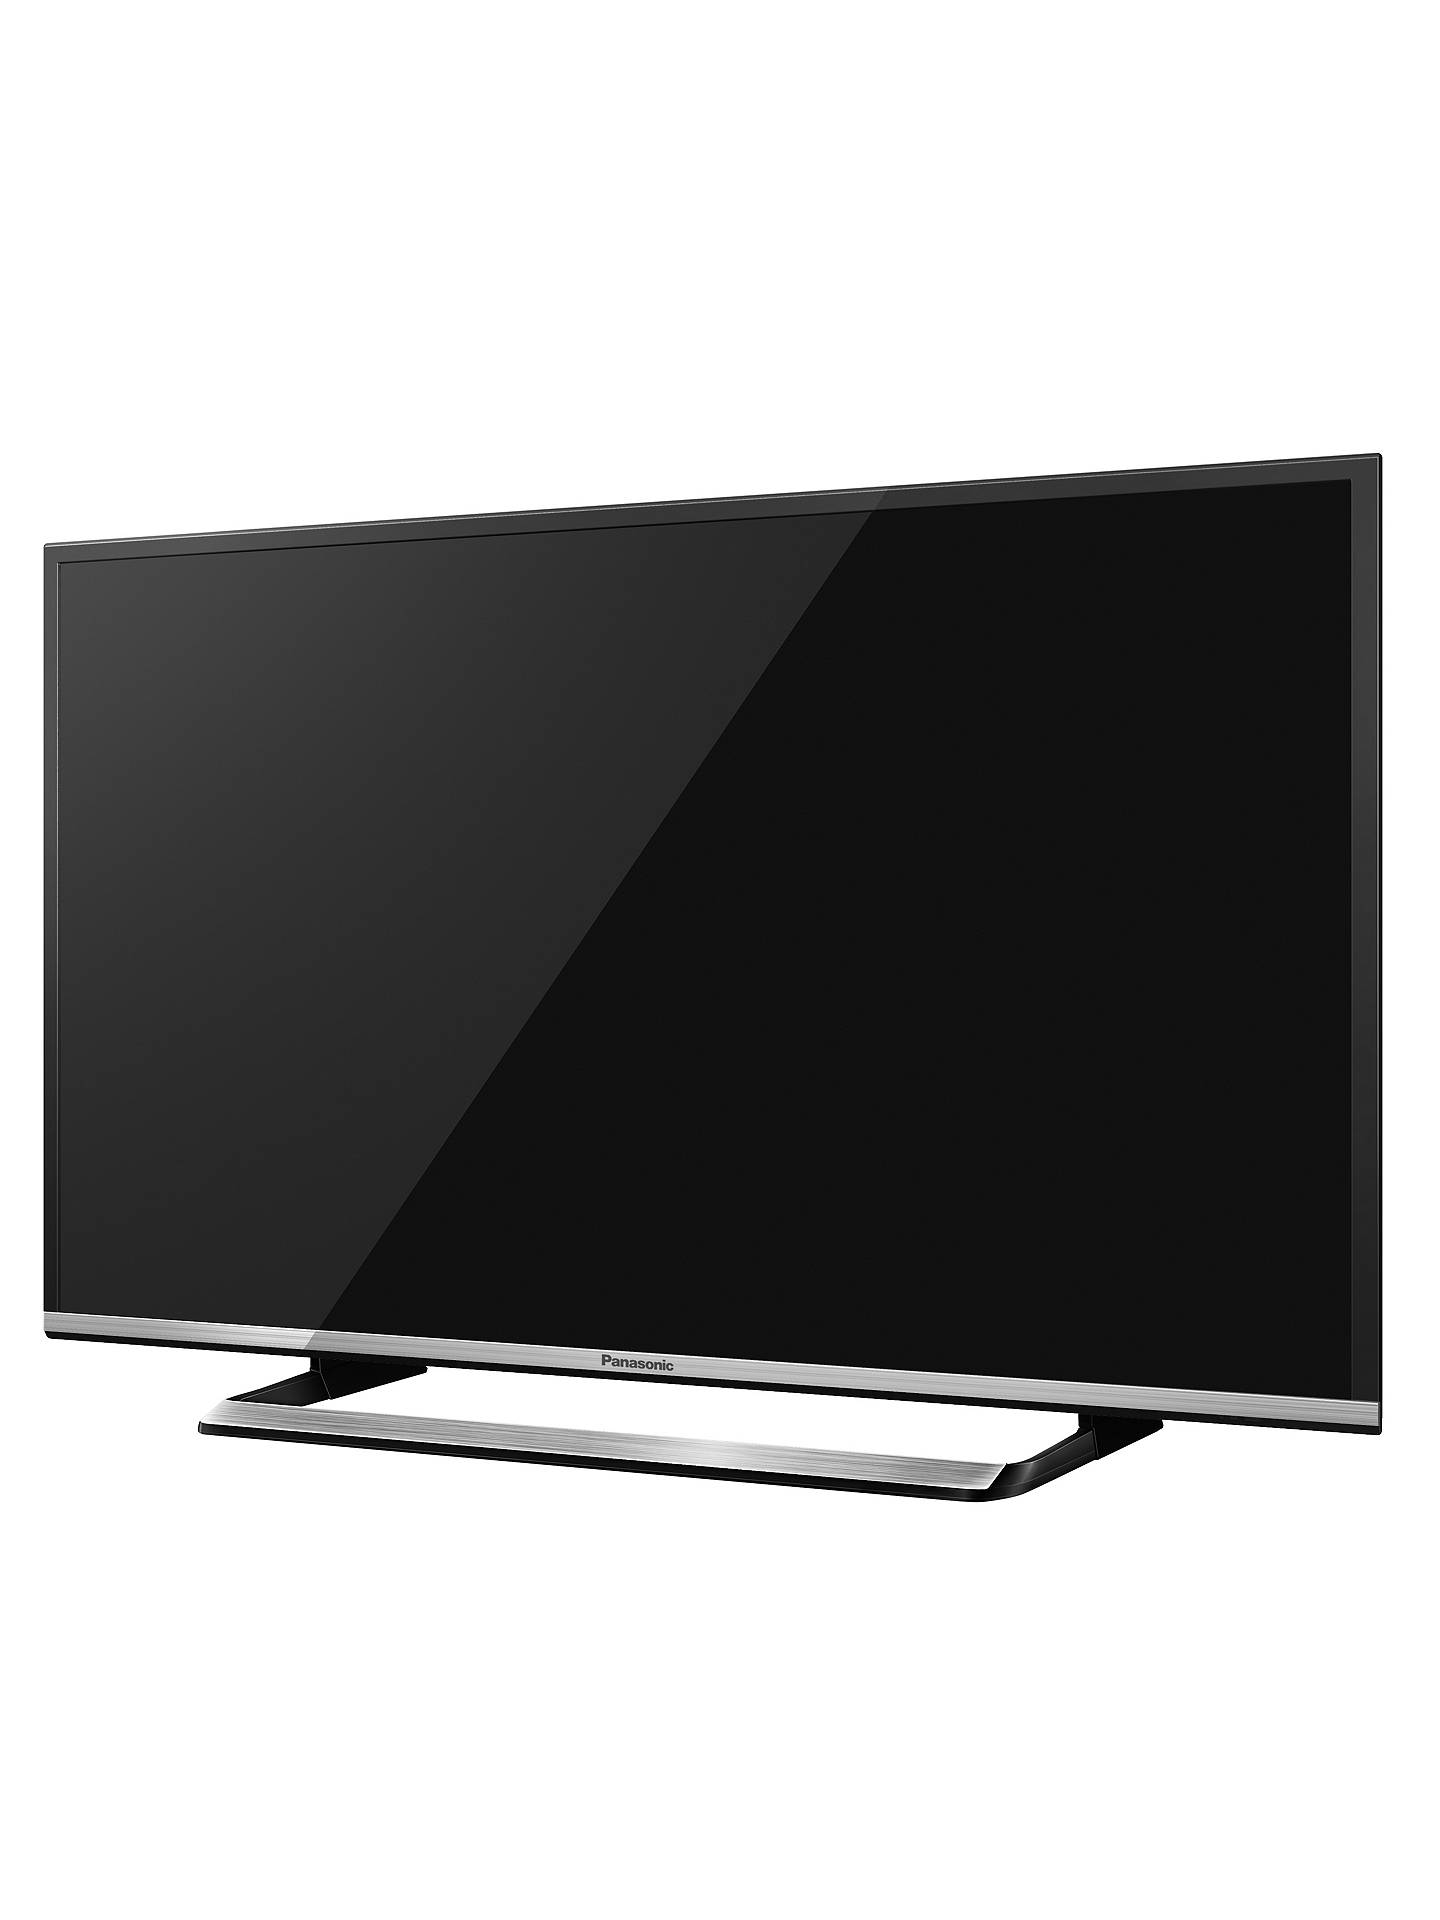 Panasonic Viera TX-40CS620B TV Driver Windows 7